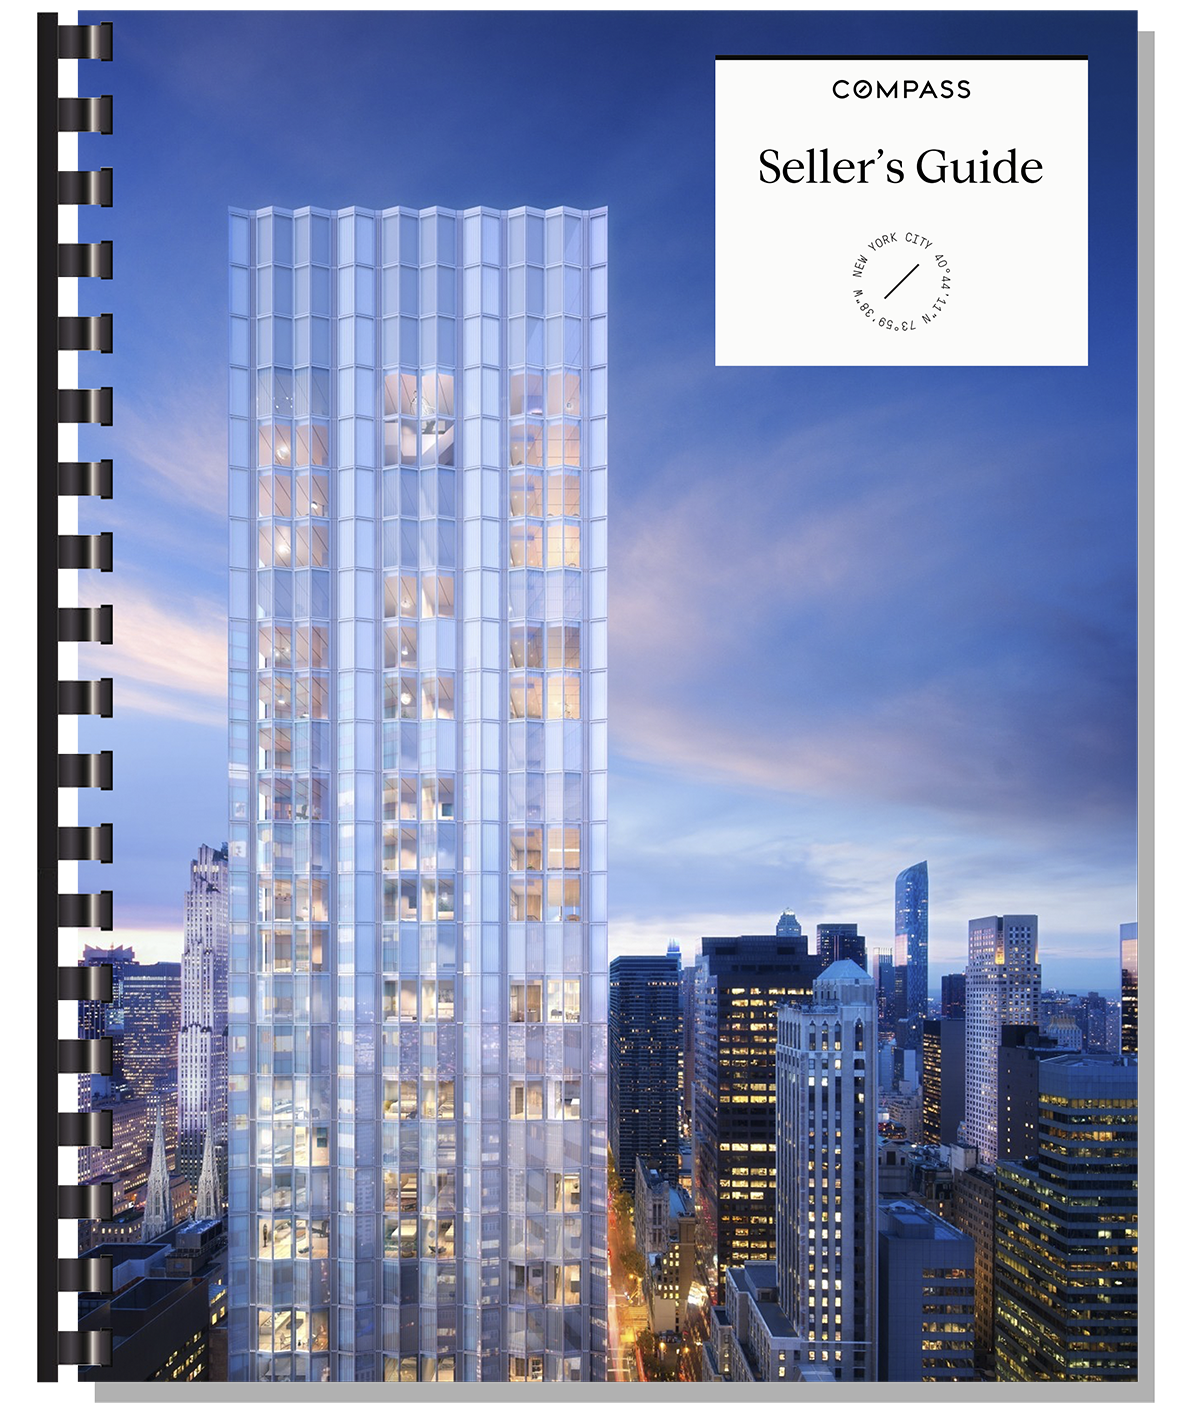 Seller's Guide - Here's our playbook. Have a look and we'll tailor another version to your very unique property.